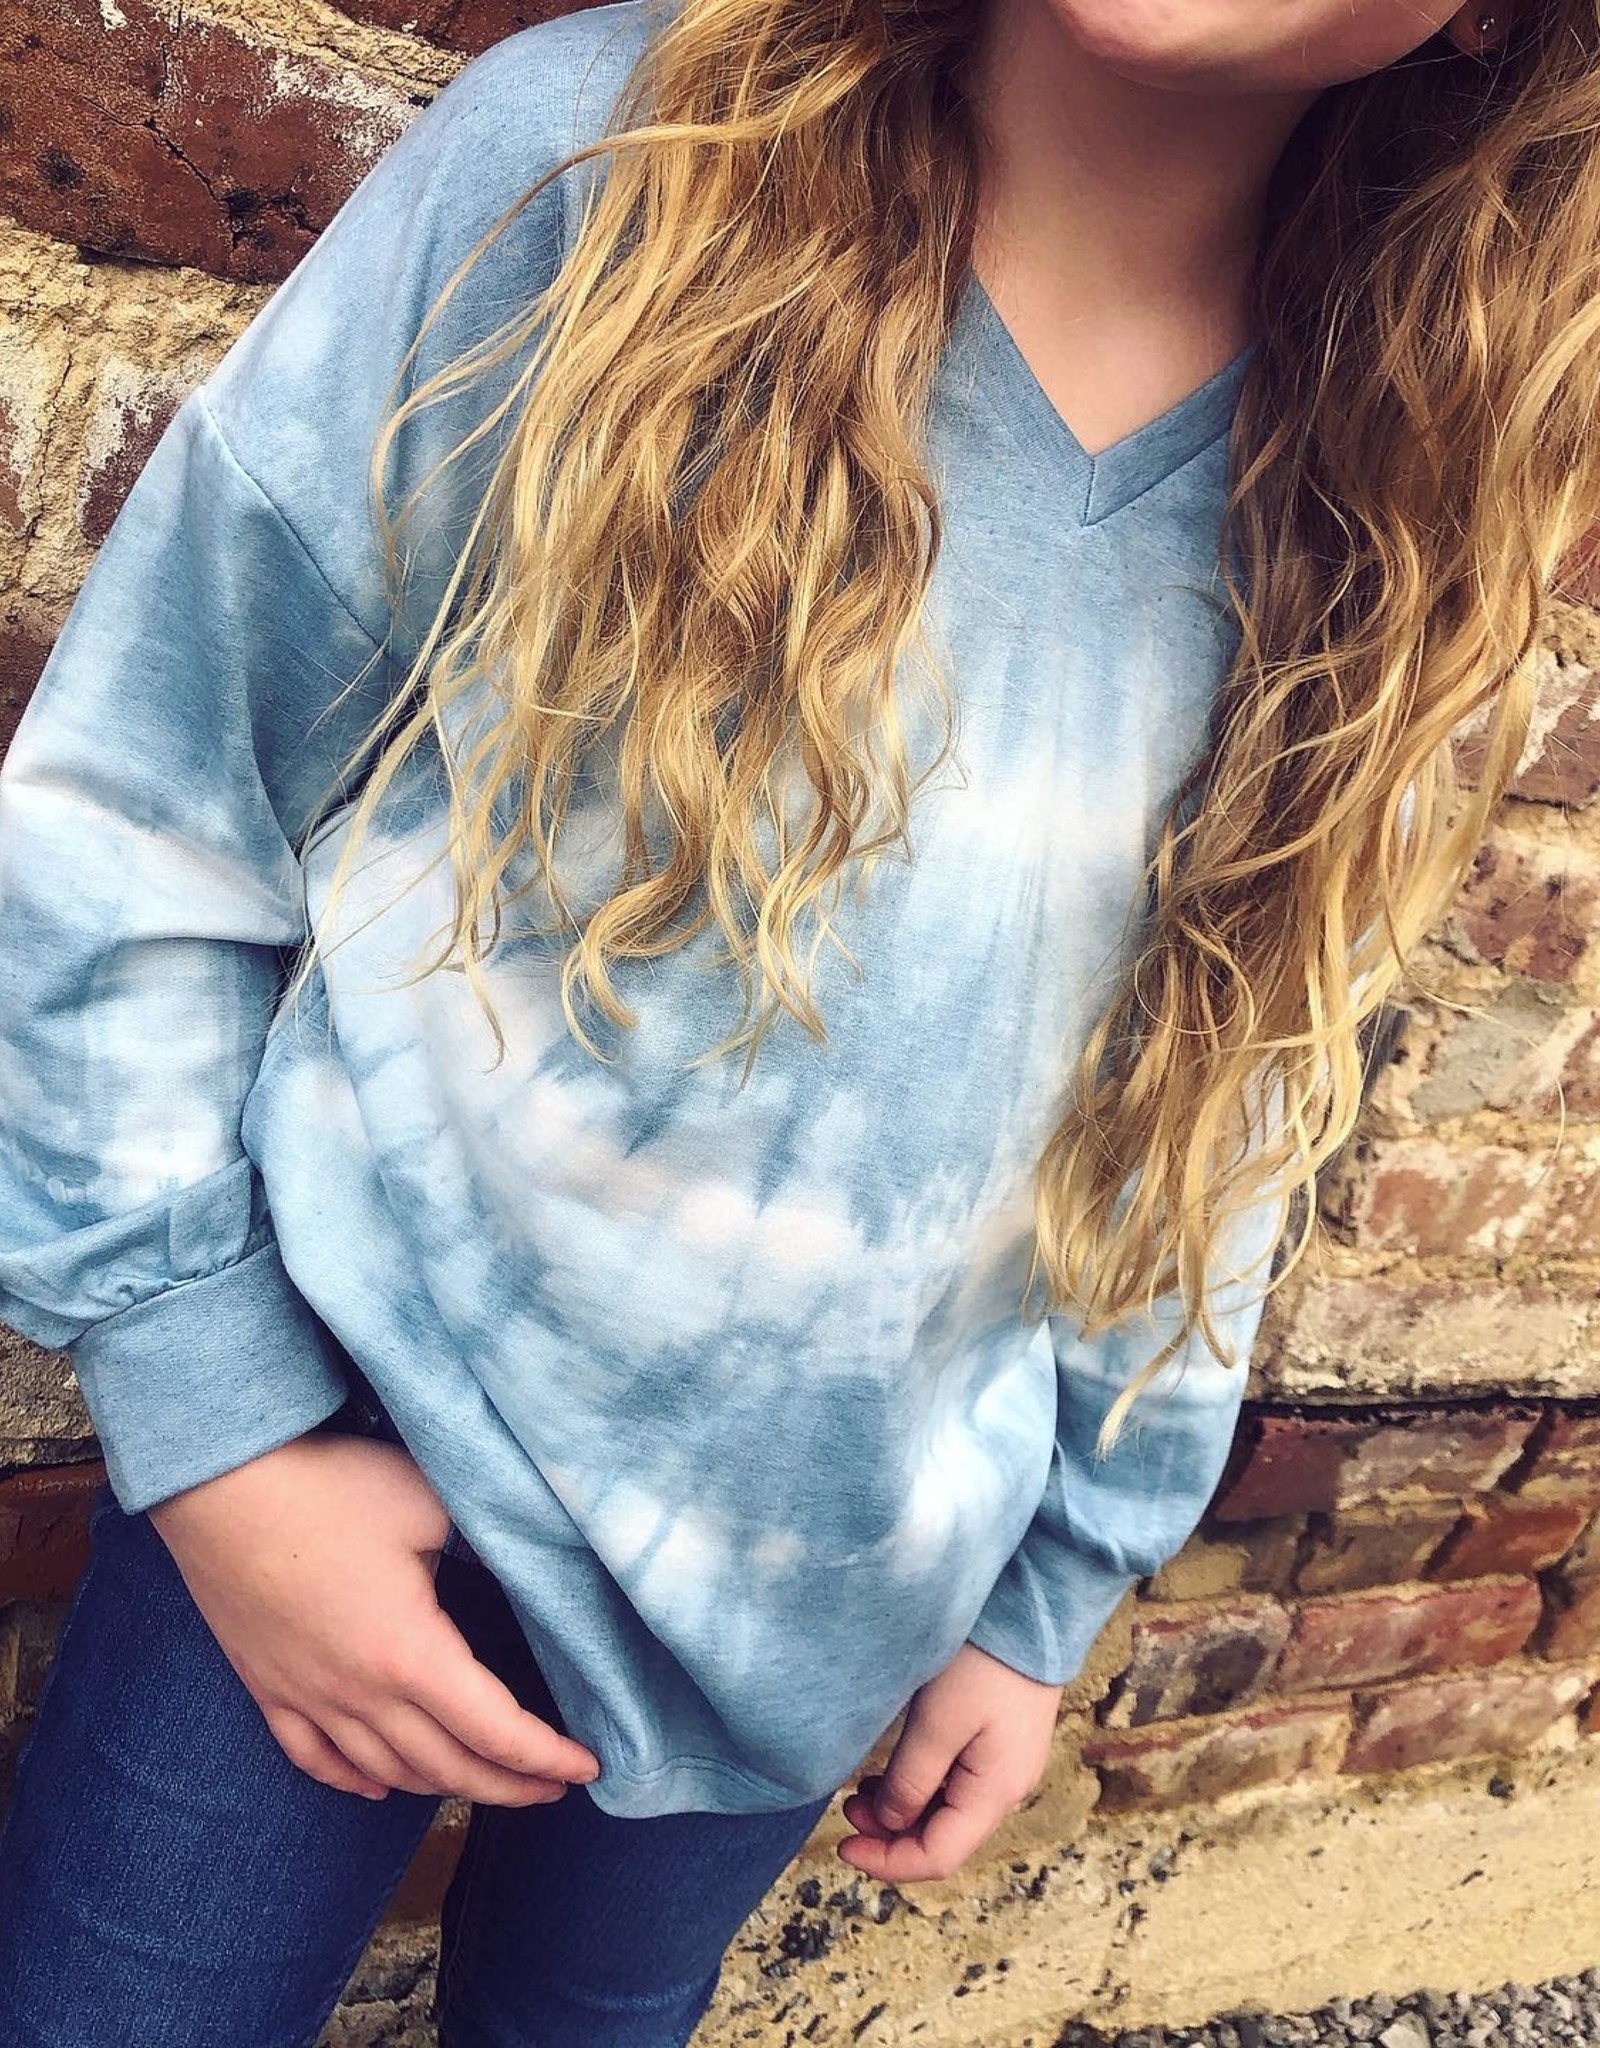 Hayden Courtney TieDye Top